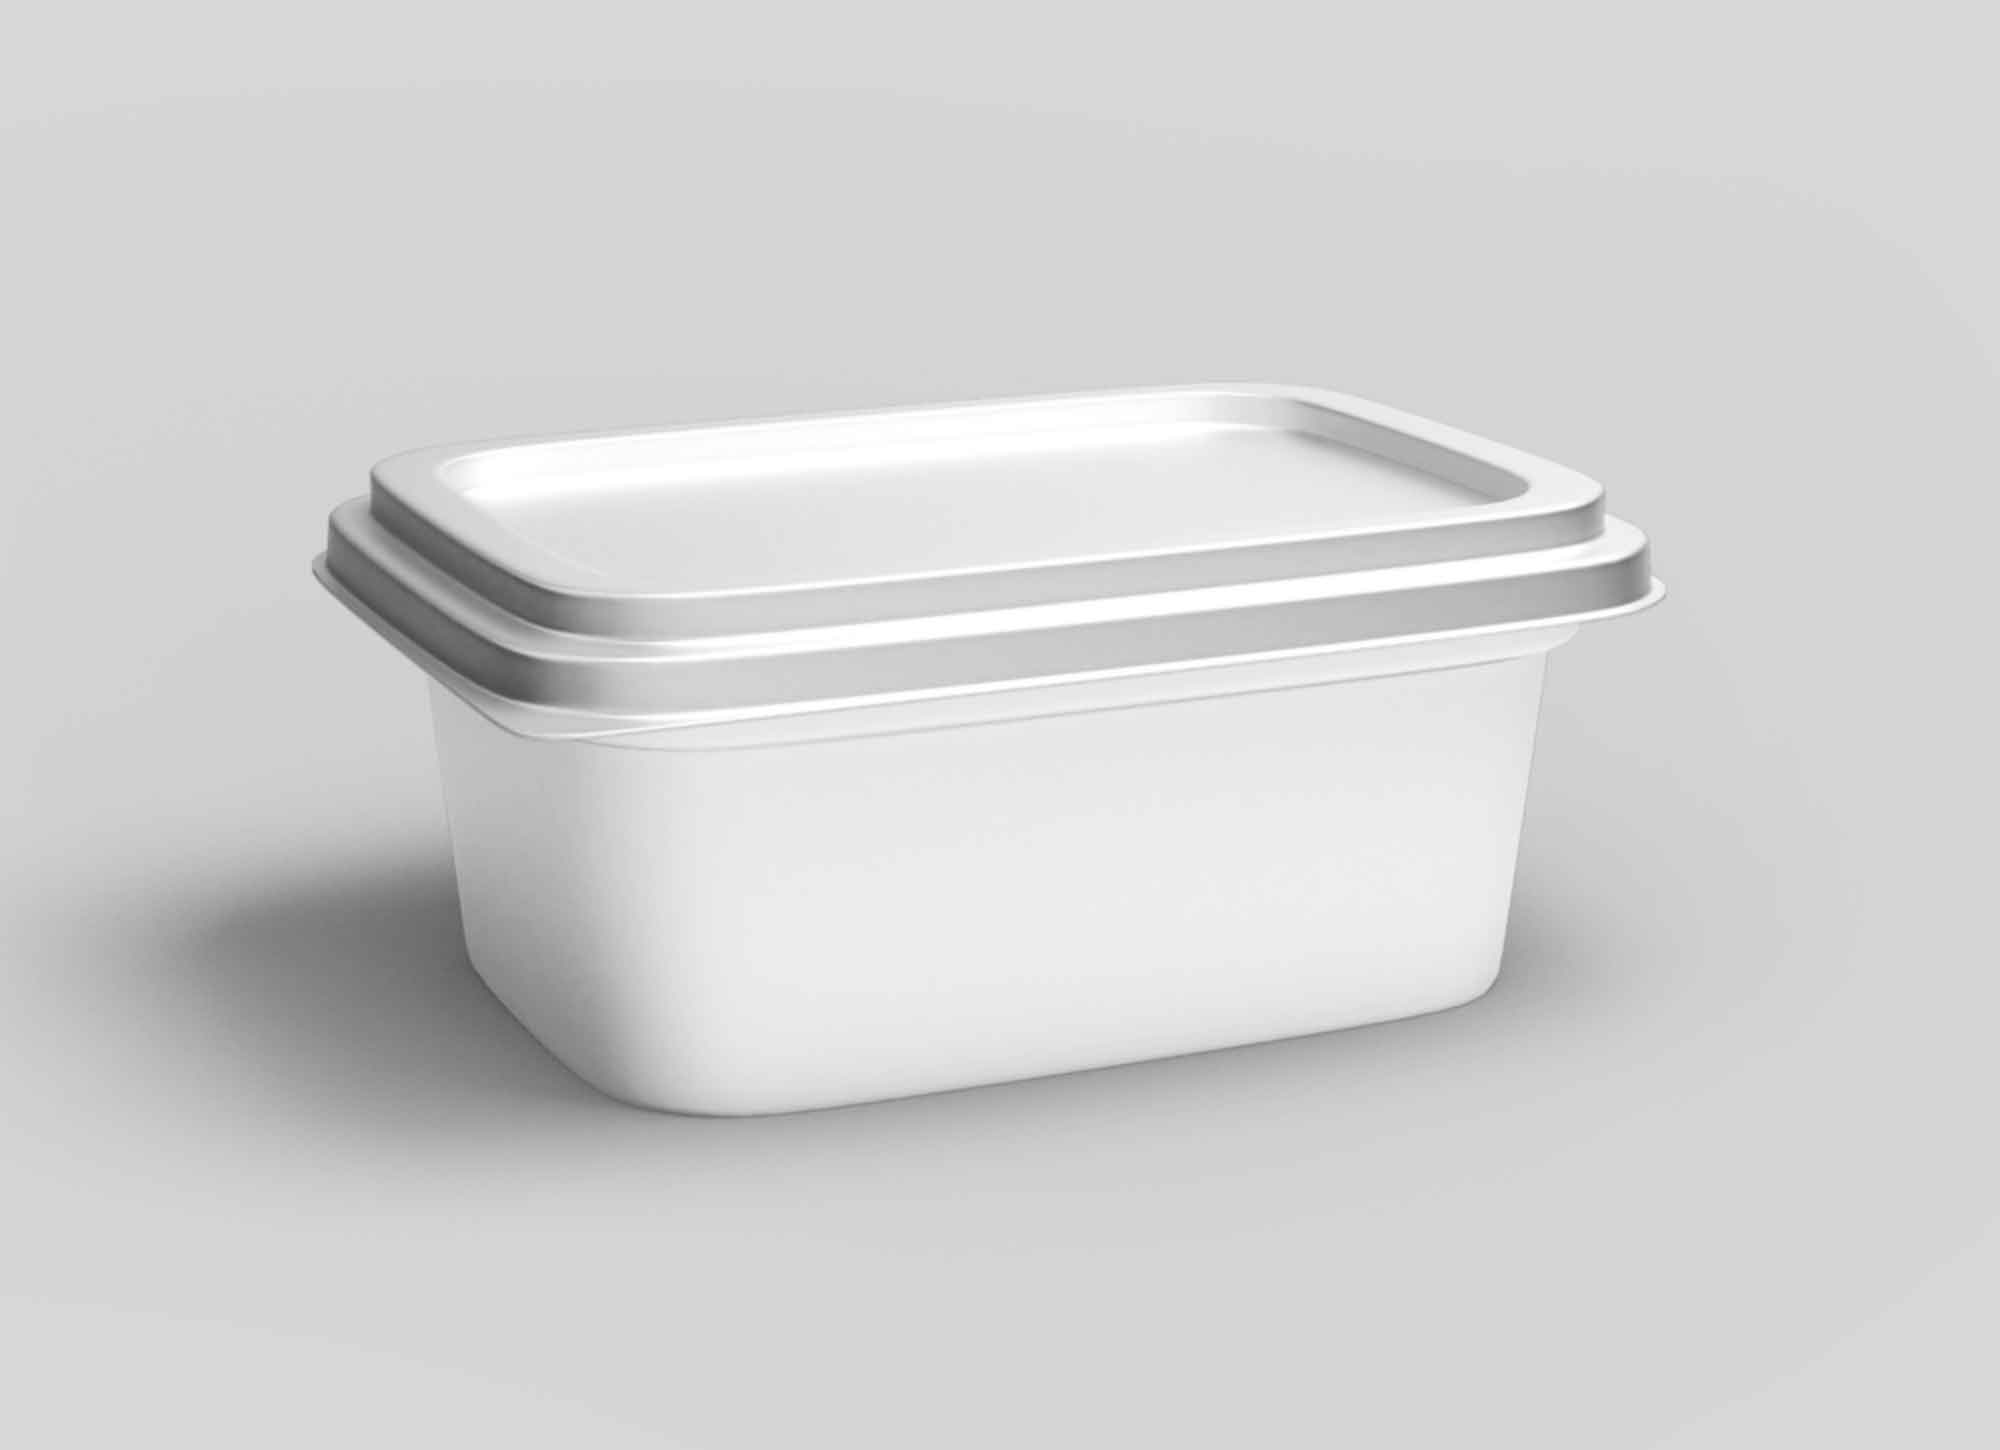 Plastic Food Container Mockup 2